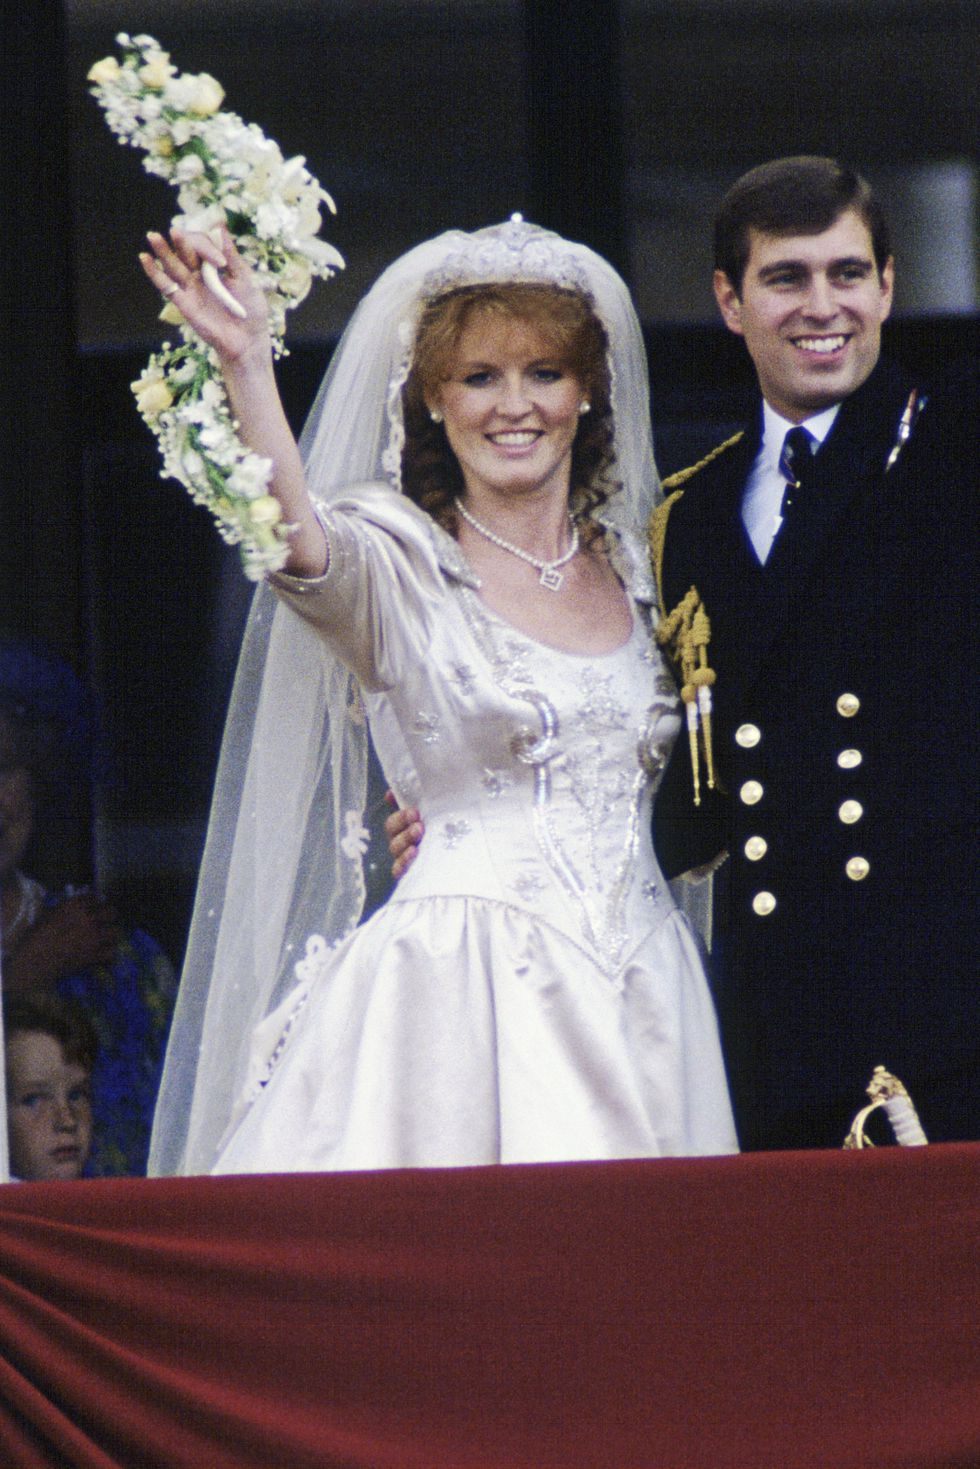 10 Hidden Details You Didn't Know About Sarah Ferguson's